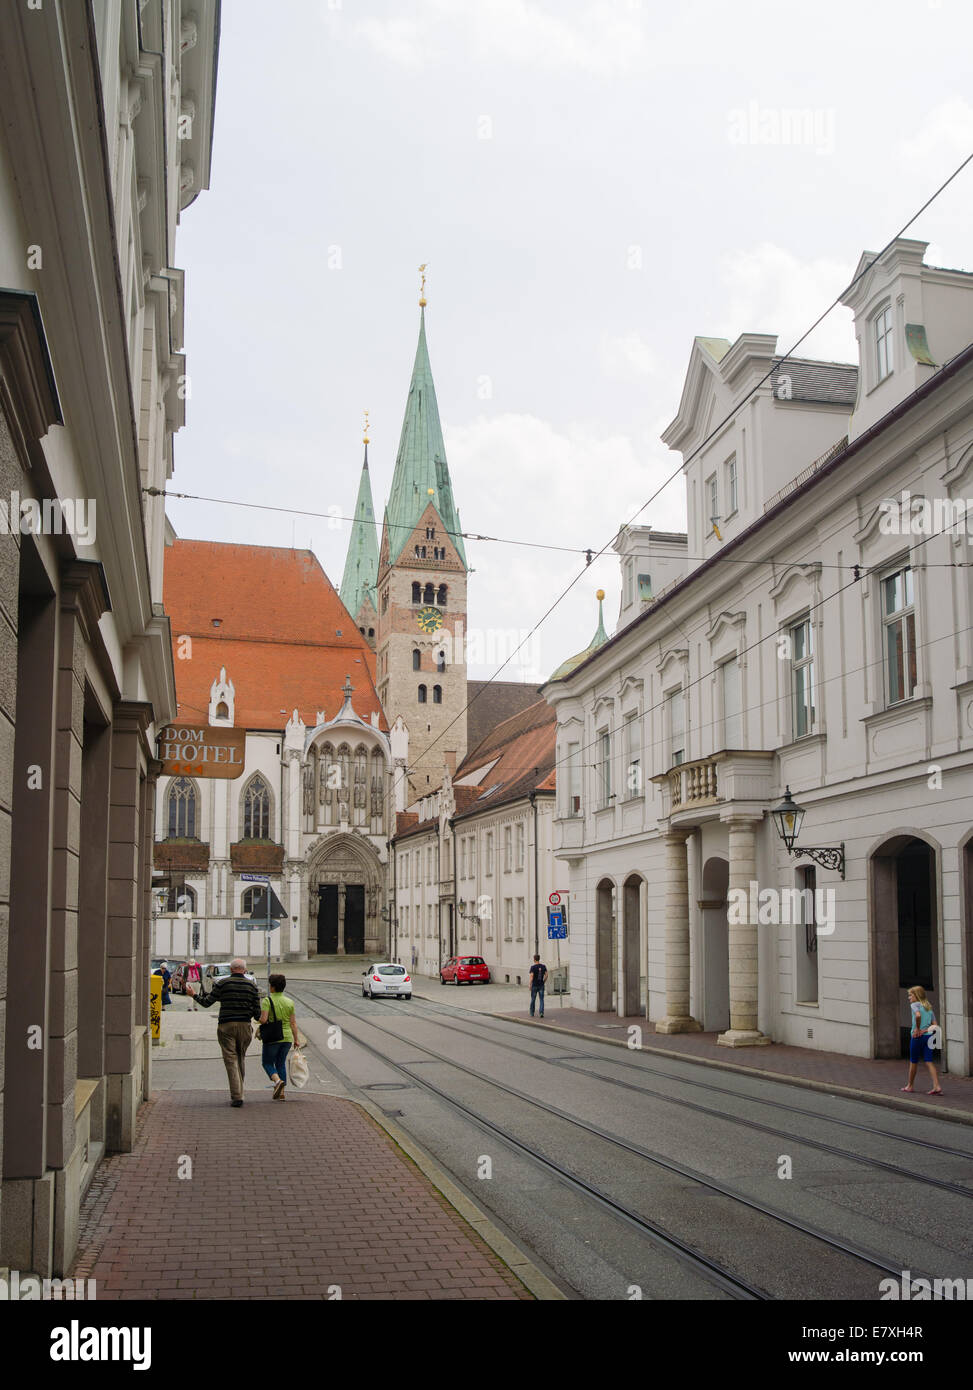 Walking along Frauentorstrasse, Augsburg, Bavaria, Germany, with a view of the Dome of St. Maria's Church. - Stock Image